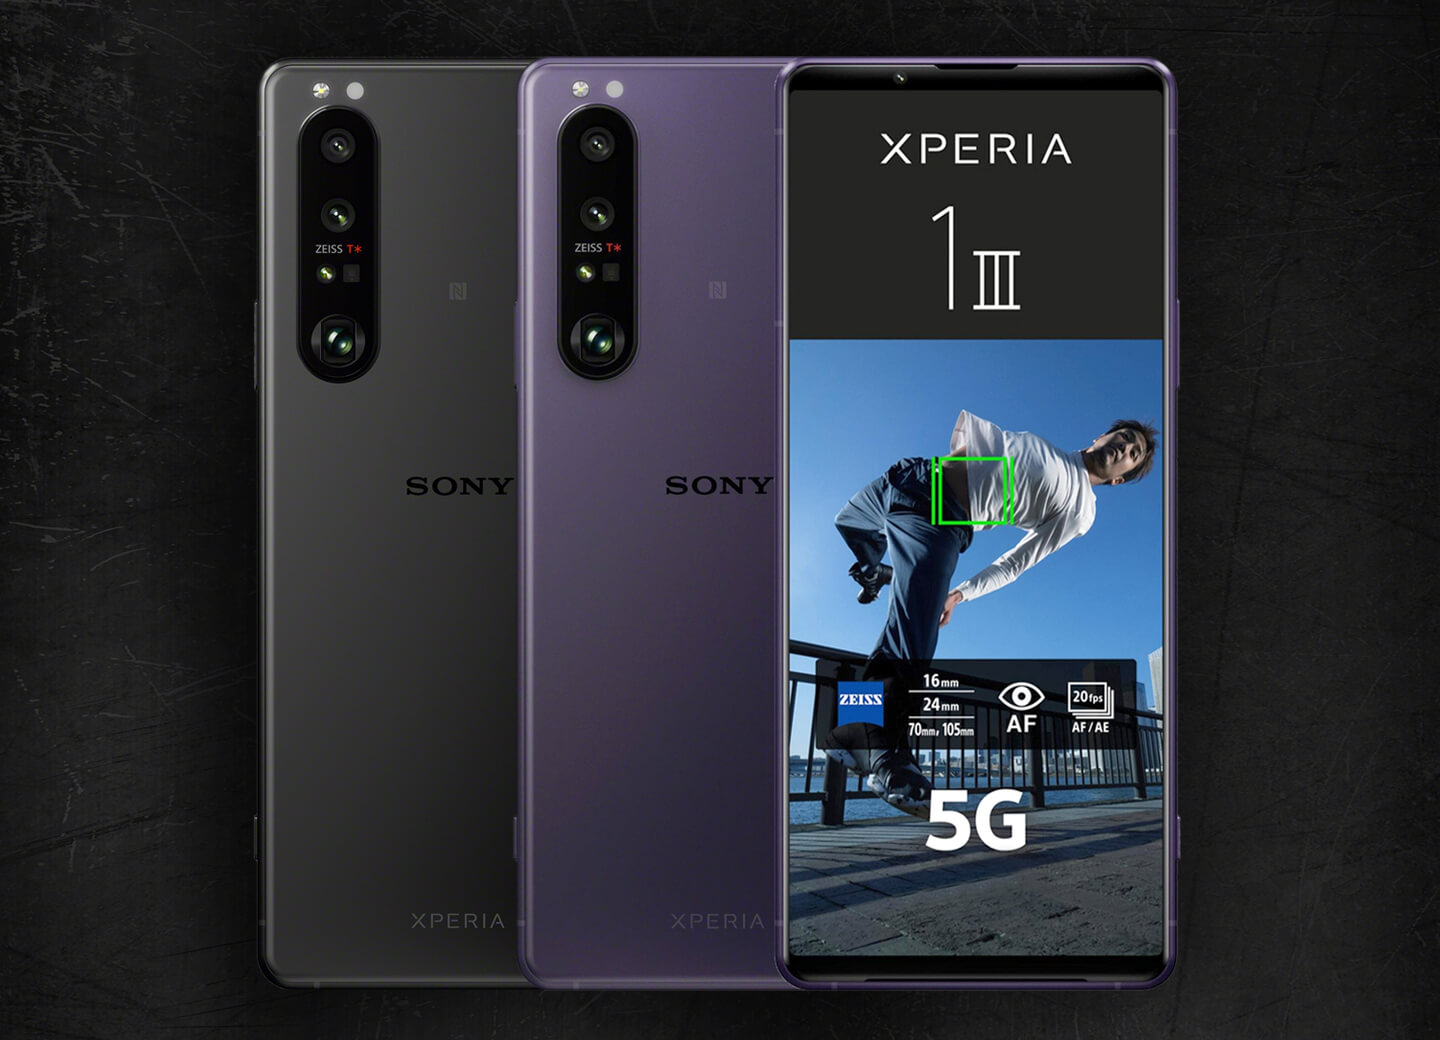 Sony Xperia smartphone review